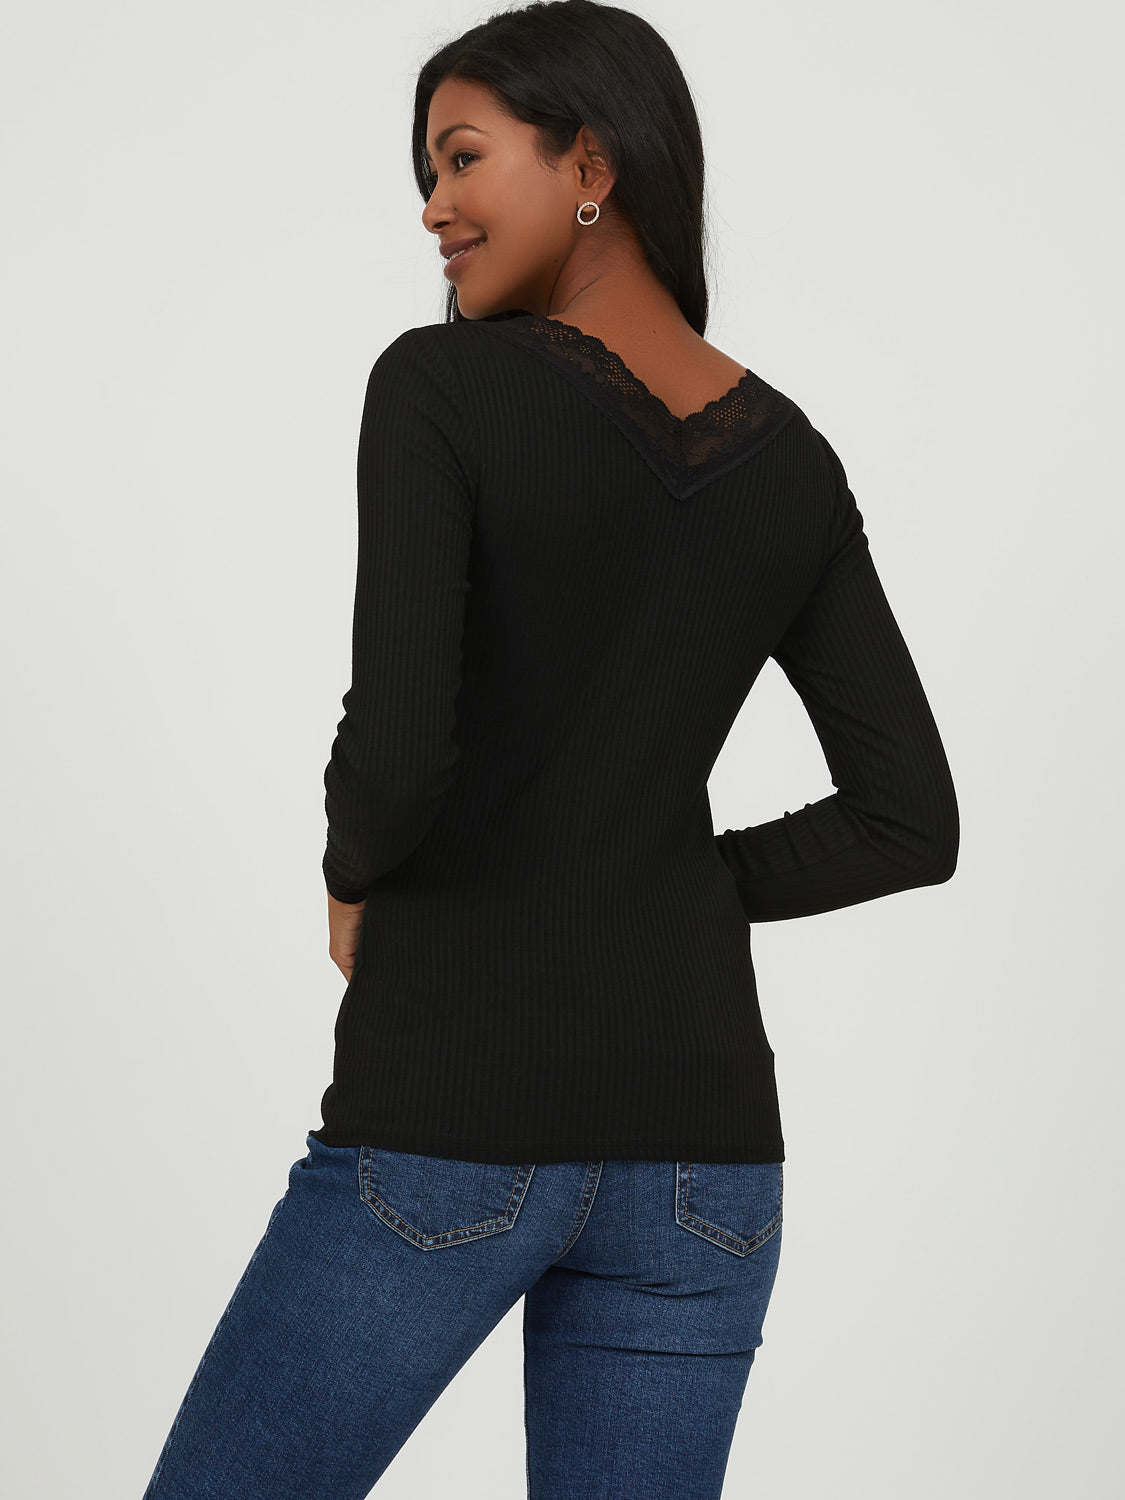 Lace Trim Rib Knit Sweater